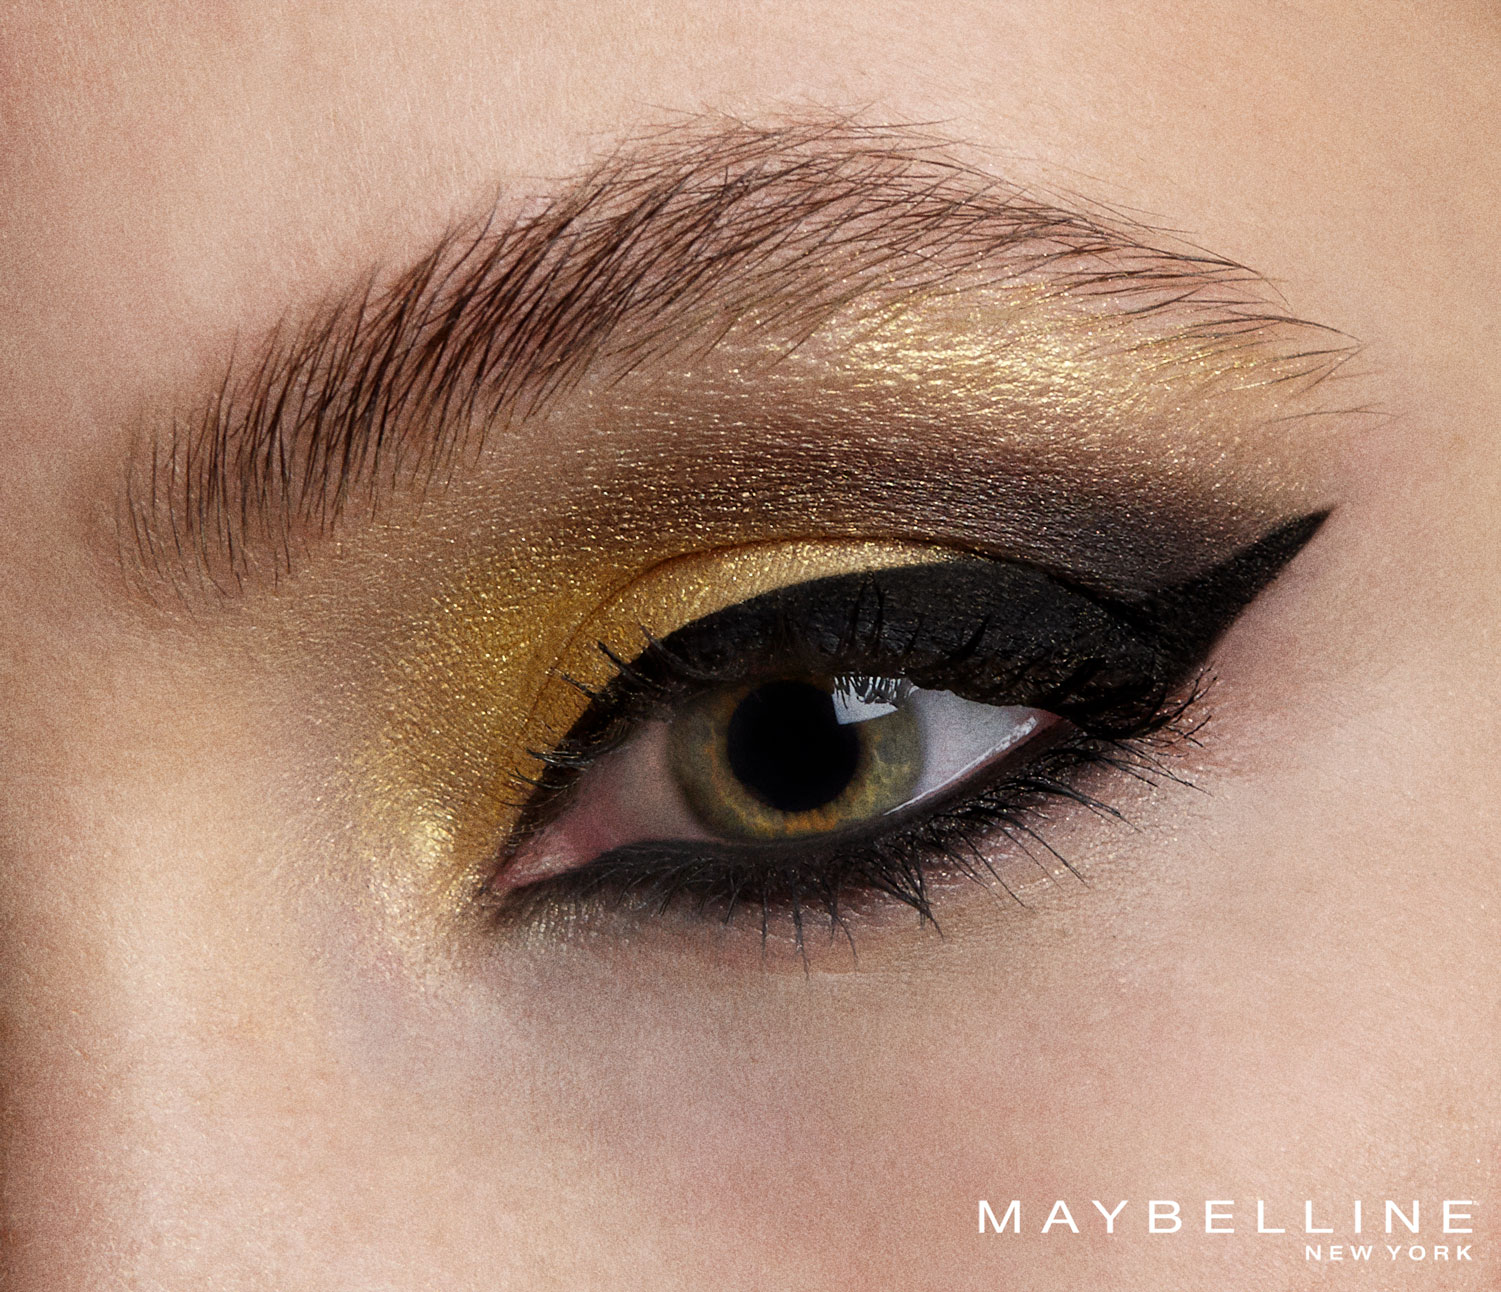 Maybelline Holiday Beauty, 2016.